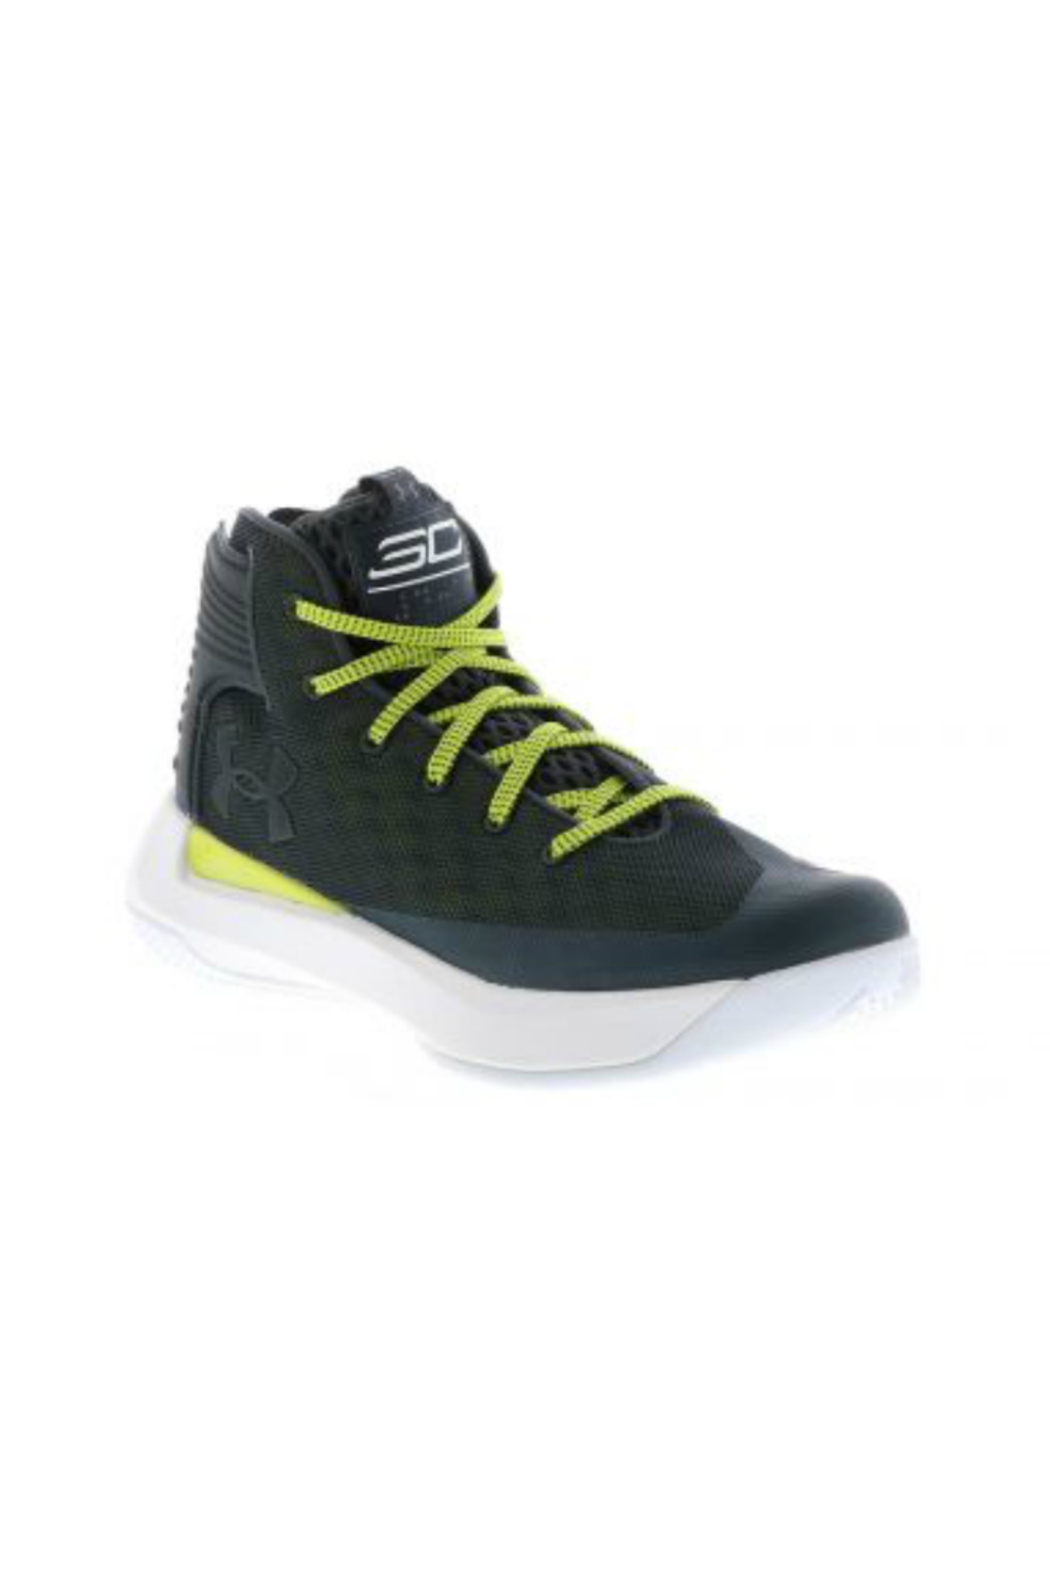 Under Armour KID'S UNDER ARMOUR CURRY 3ZERO - Main Image